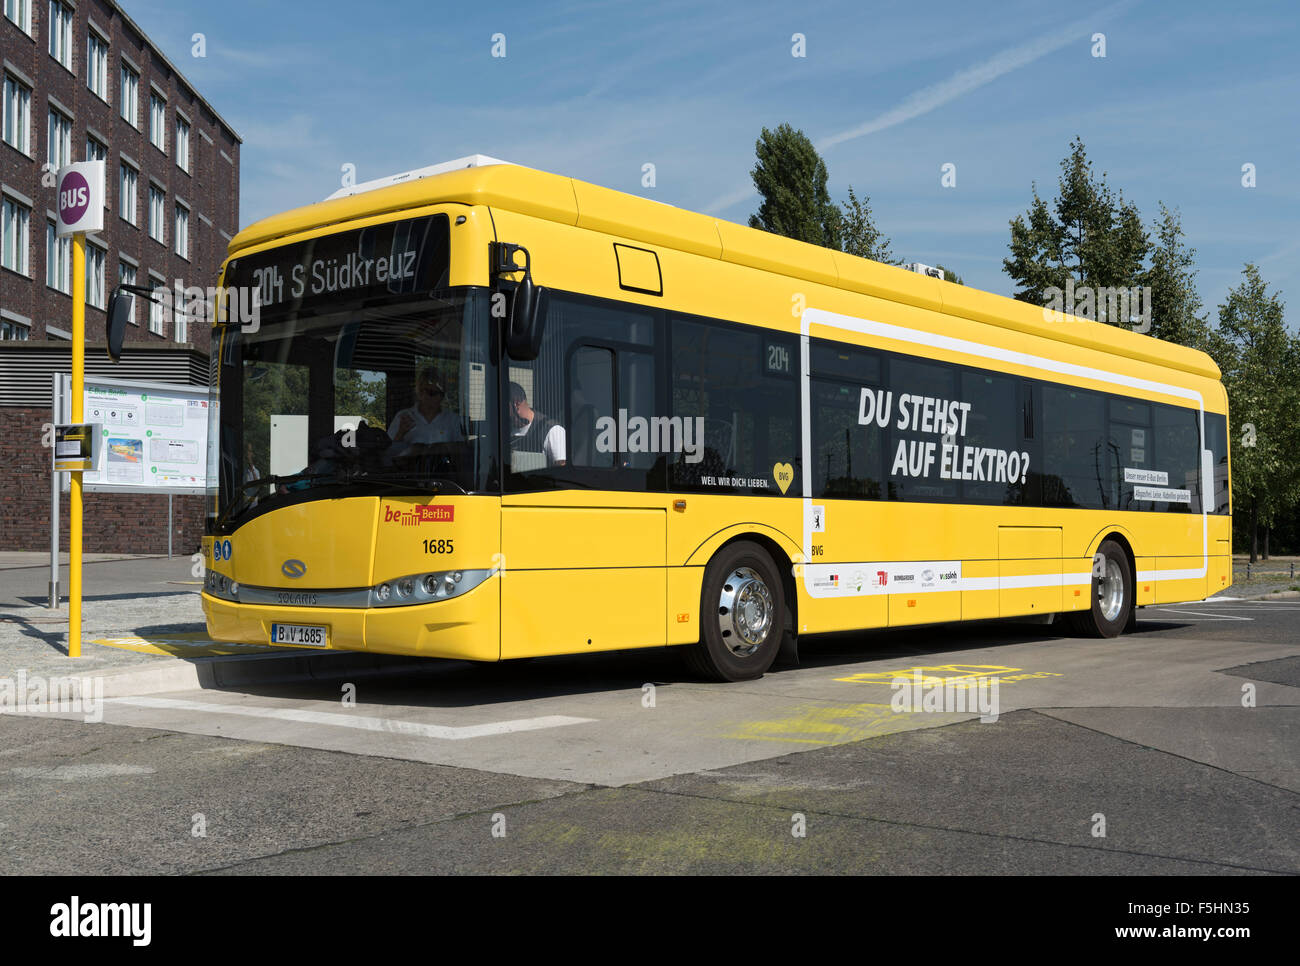 berlin germany e bus berlin bvg line 204 cars in 1685 stock photo royalty free image. Black Bedroom Furniture Sets. Home Design Ideas